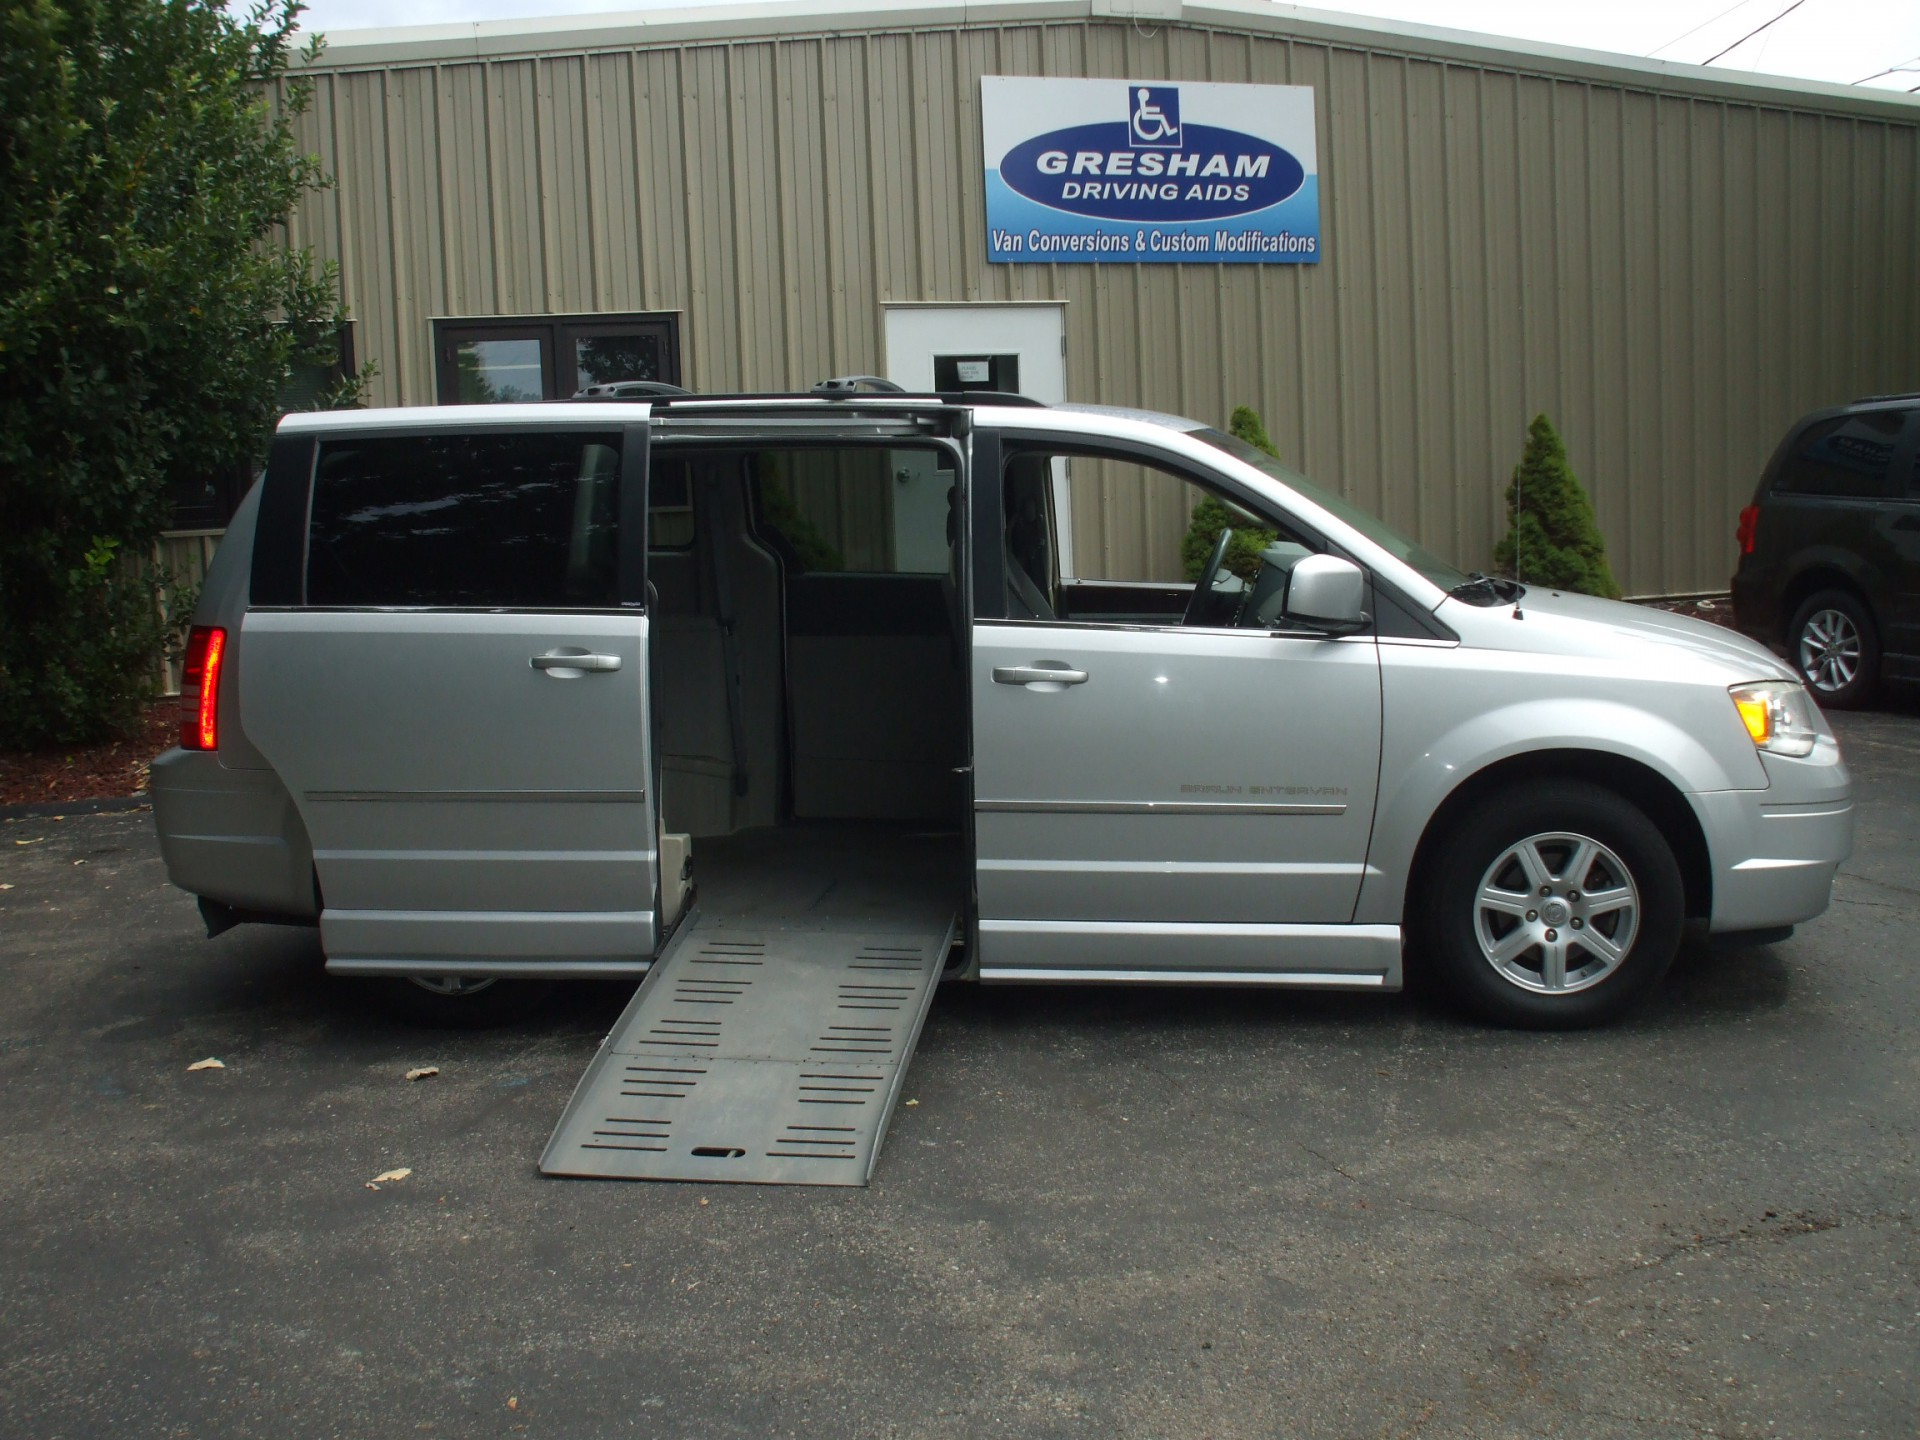 2010 chrysler town and country stock 16062 wheelchair van for sale gresham driving aids. Black Bedroom Furniture Sets. Home Design Ideas